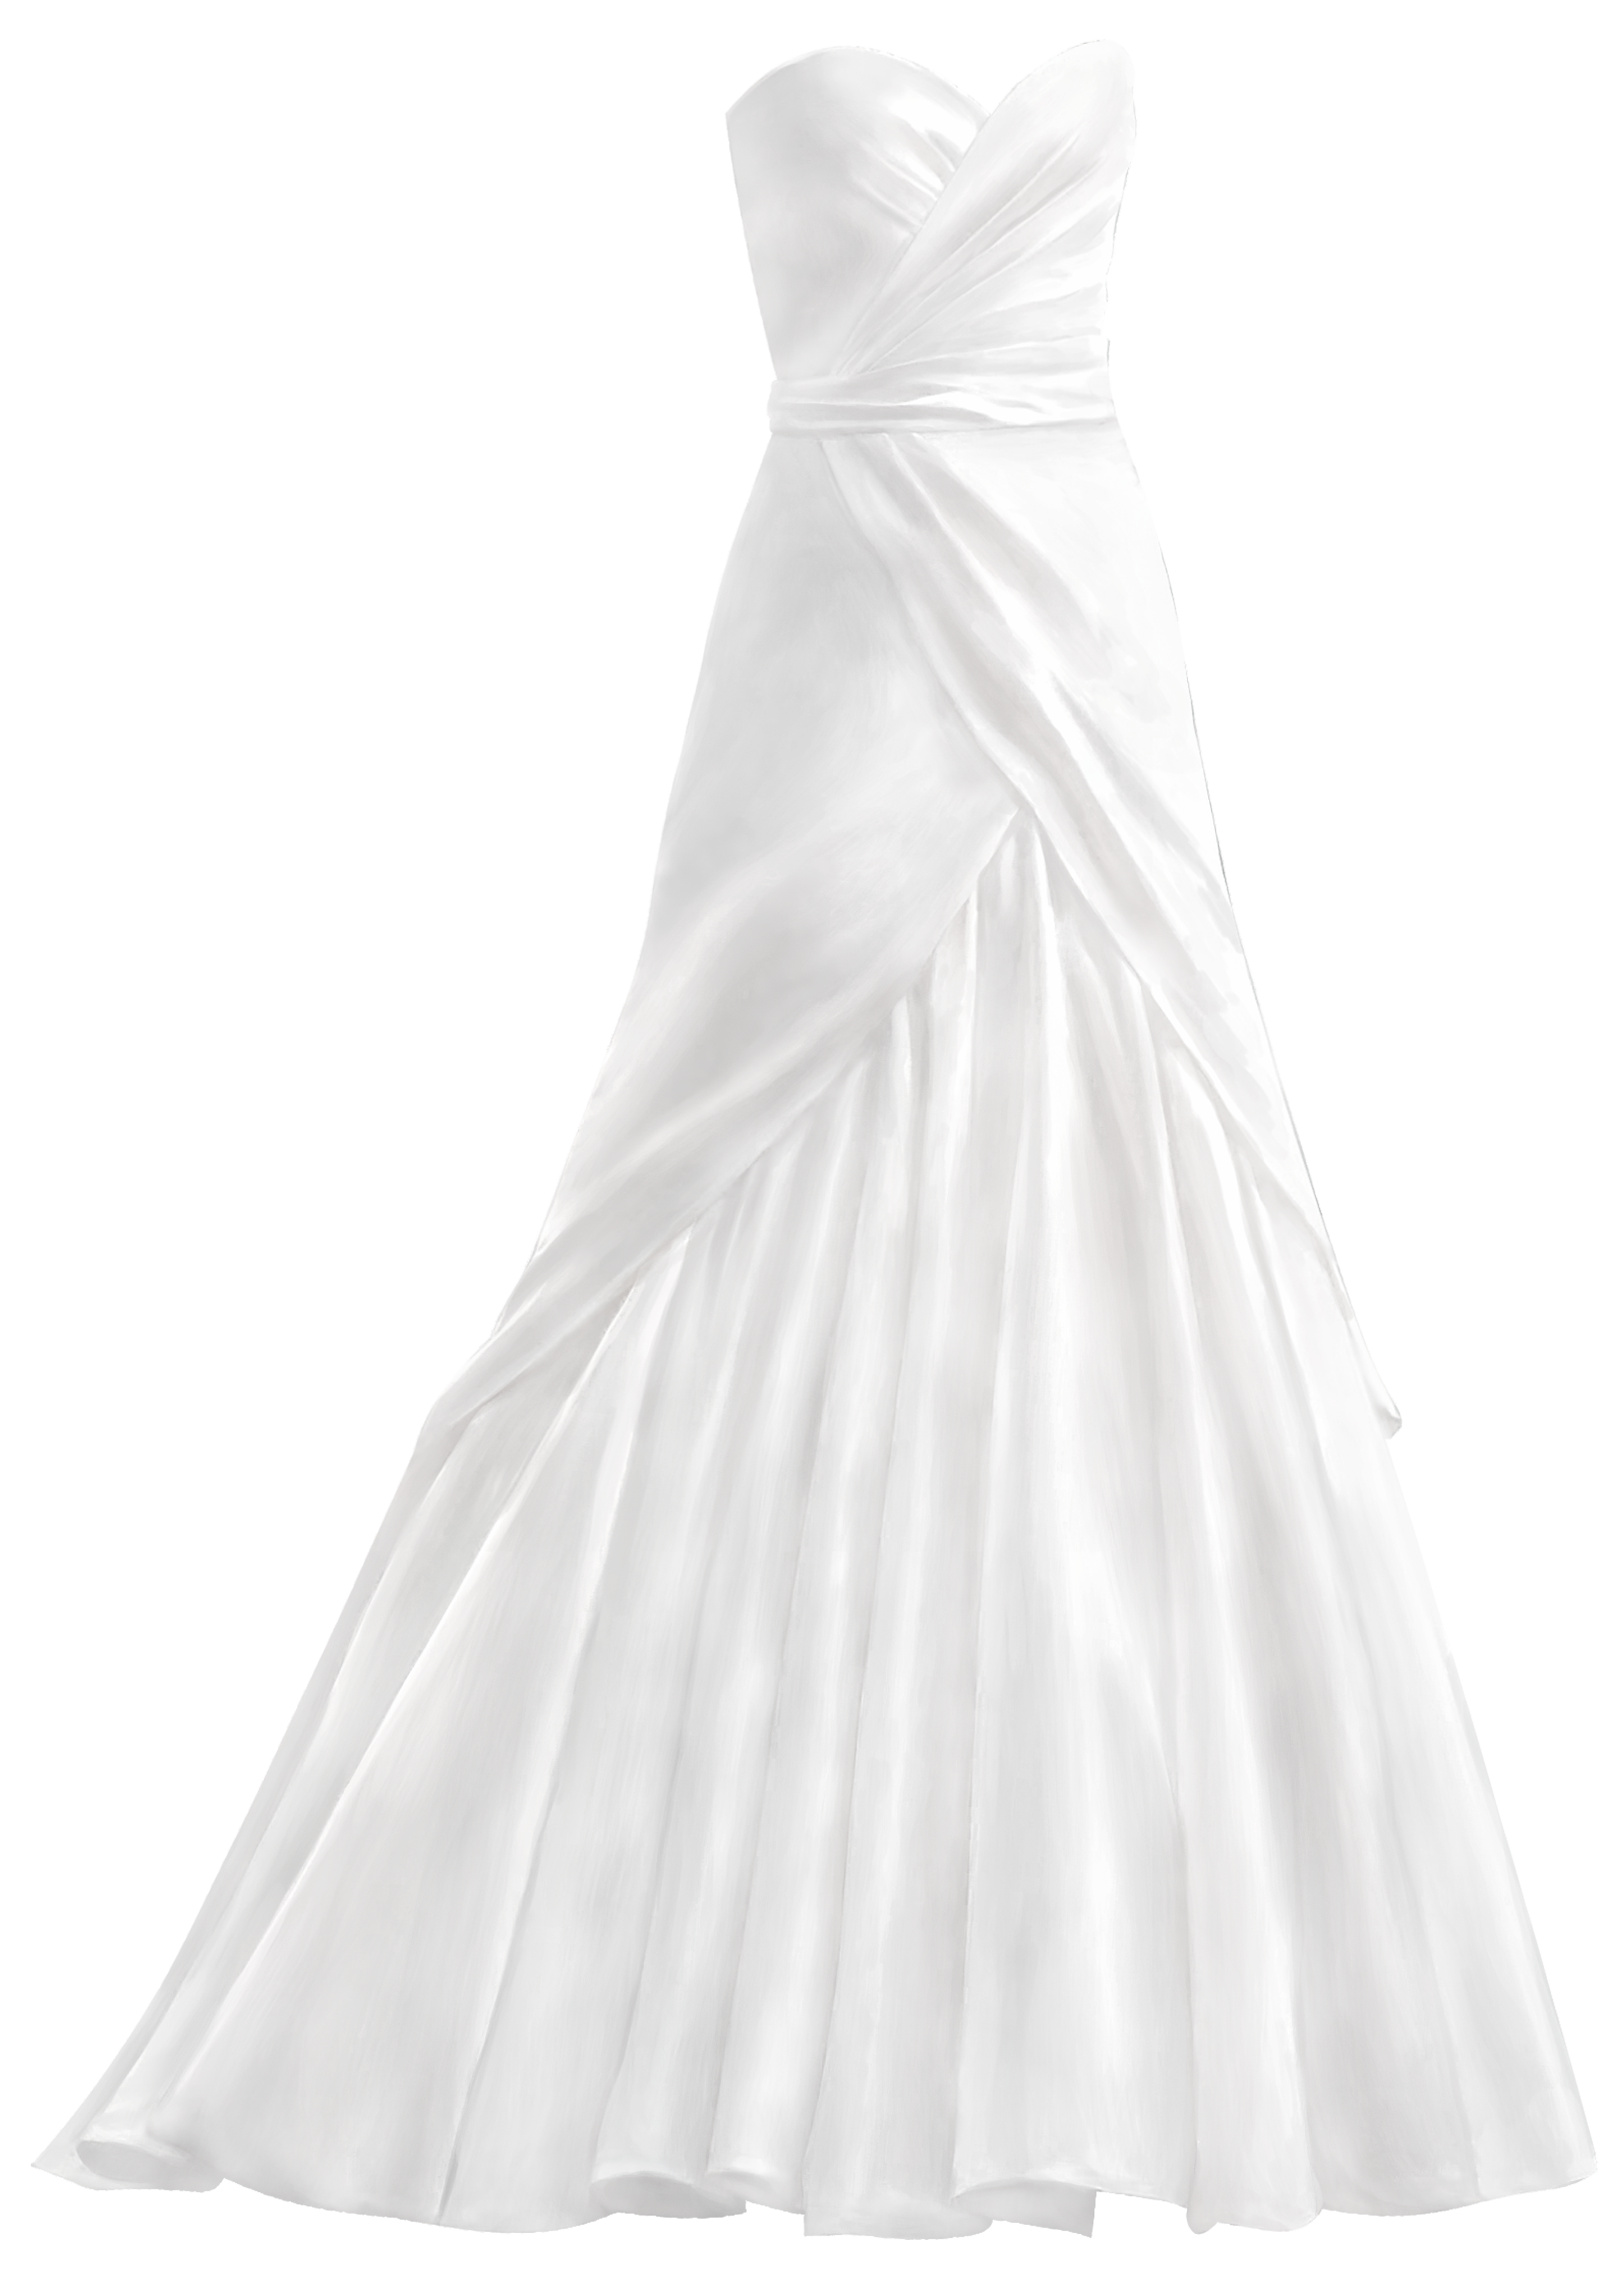 Fishtail fish clipart png library White Wedding Dress PNG Clip Art - Best WEB Clipart png library